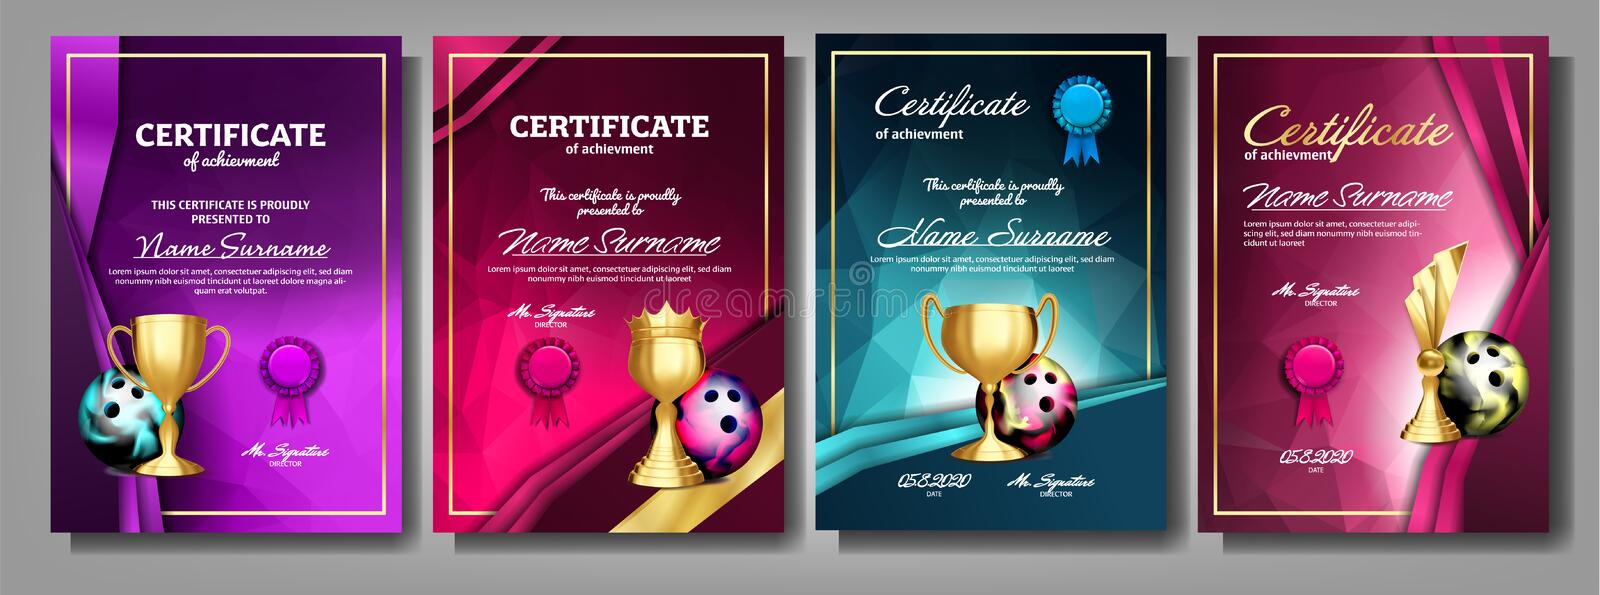 Bowling Game Certificate Diploma With Golden Cup Set Vector. Sport Award Template. Achievement Design. Honor Background. A4 Vertical. Graduation. Elegant vector illustration